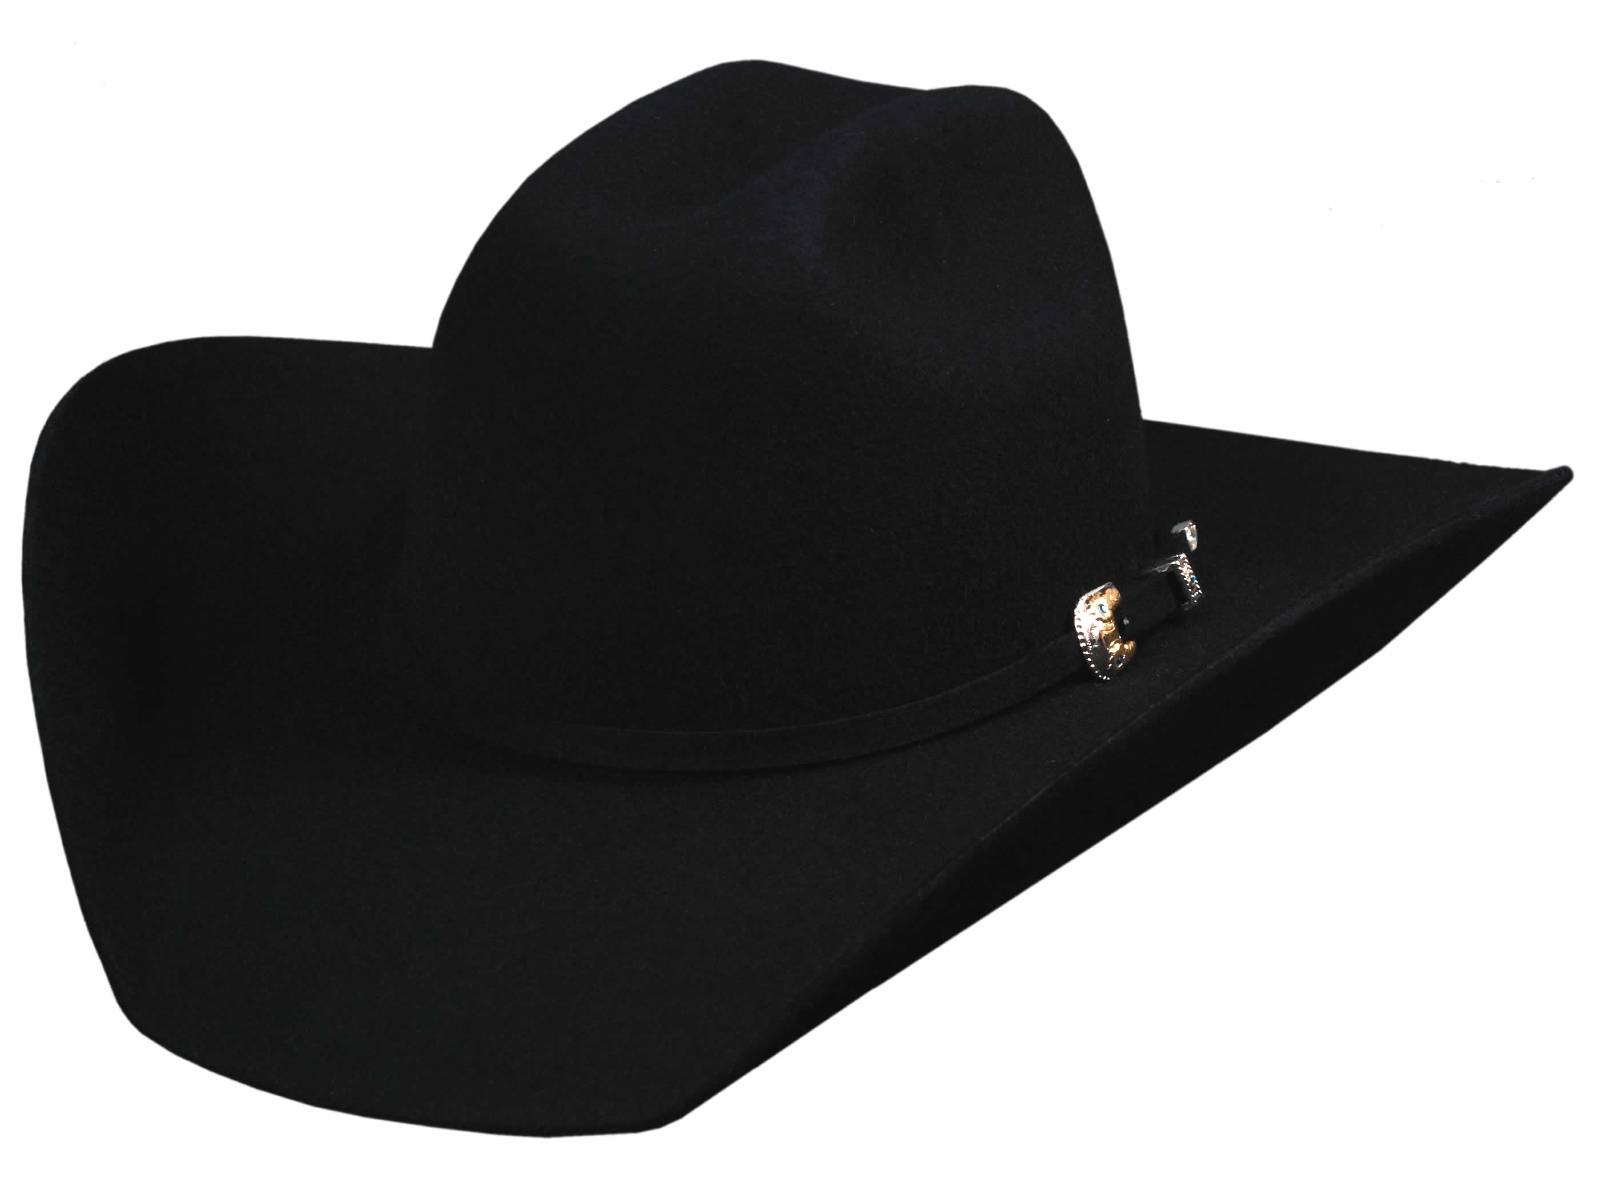 Bullhide Kingman 4X Traditional Western Felt Hat